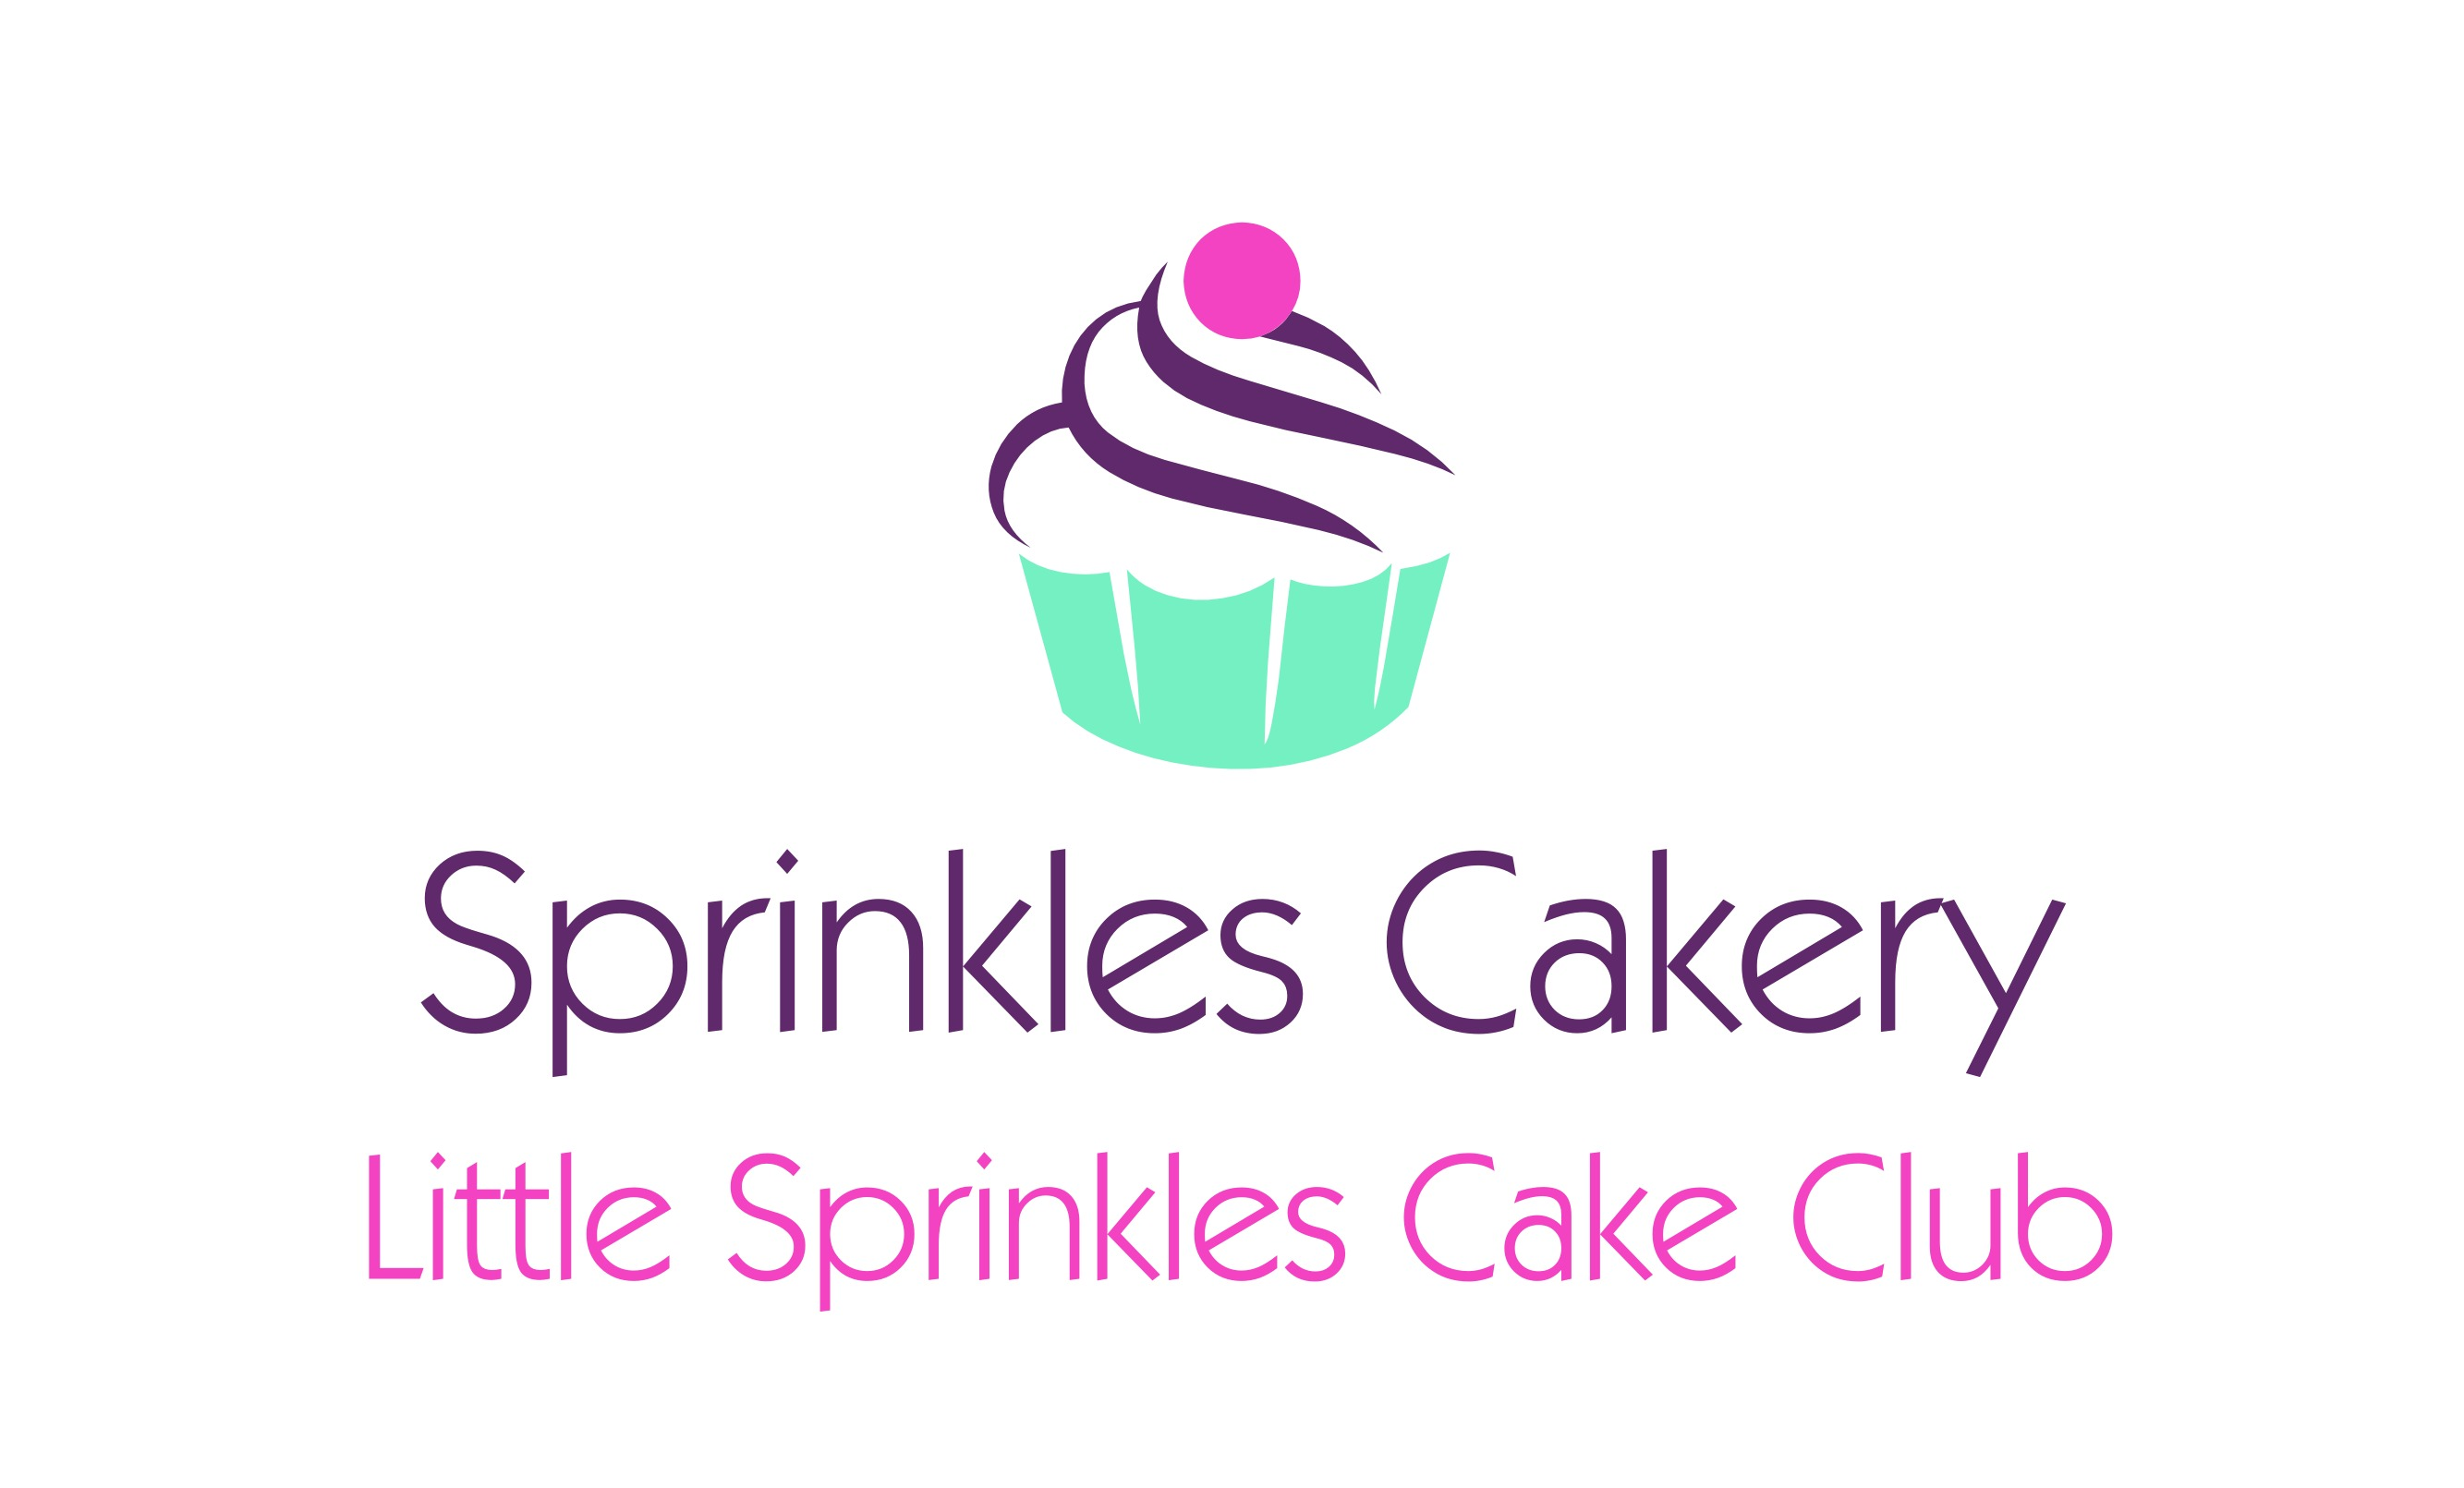 Sprinkles Cakery by Post